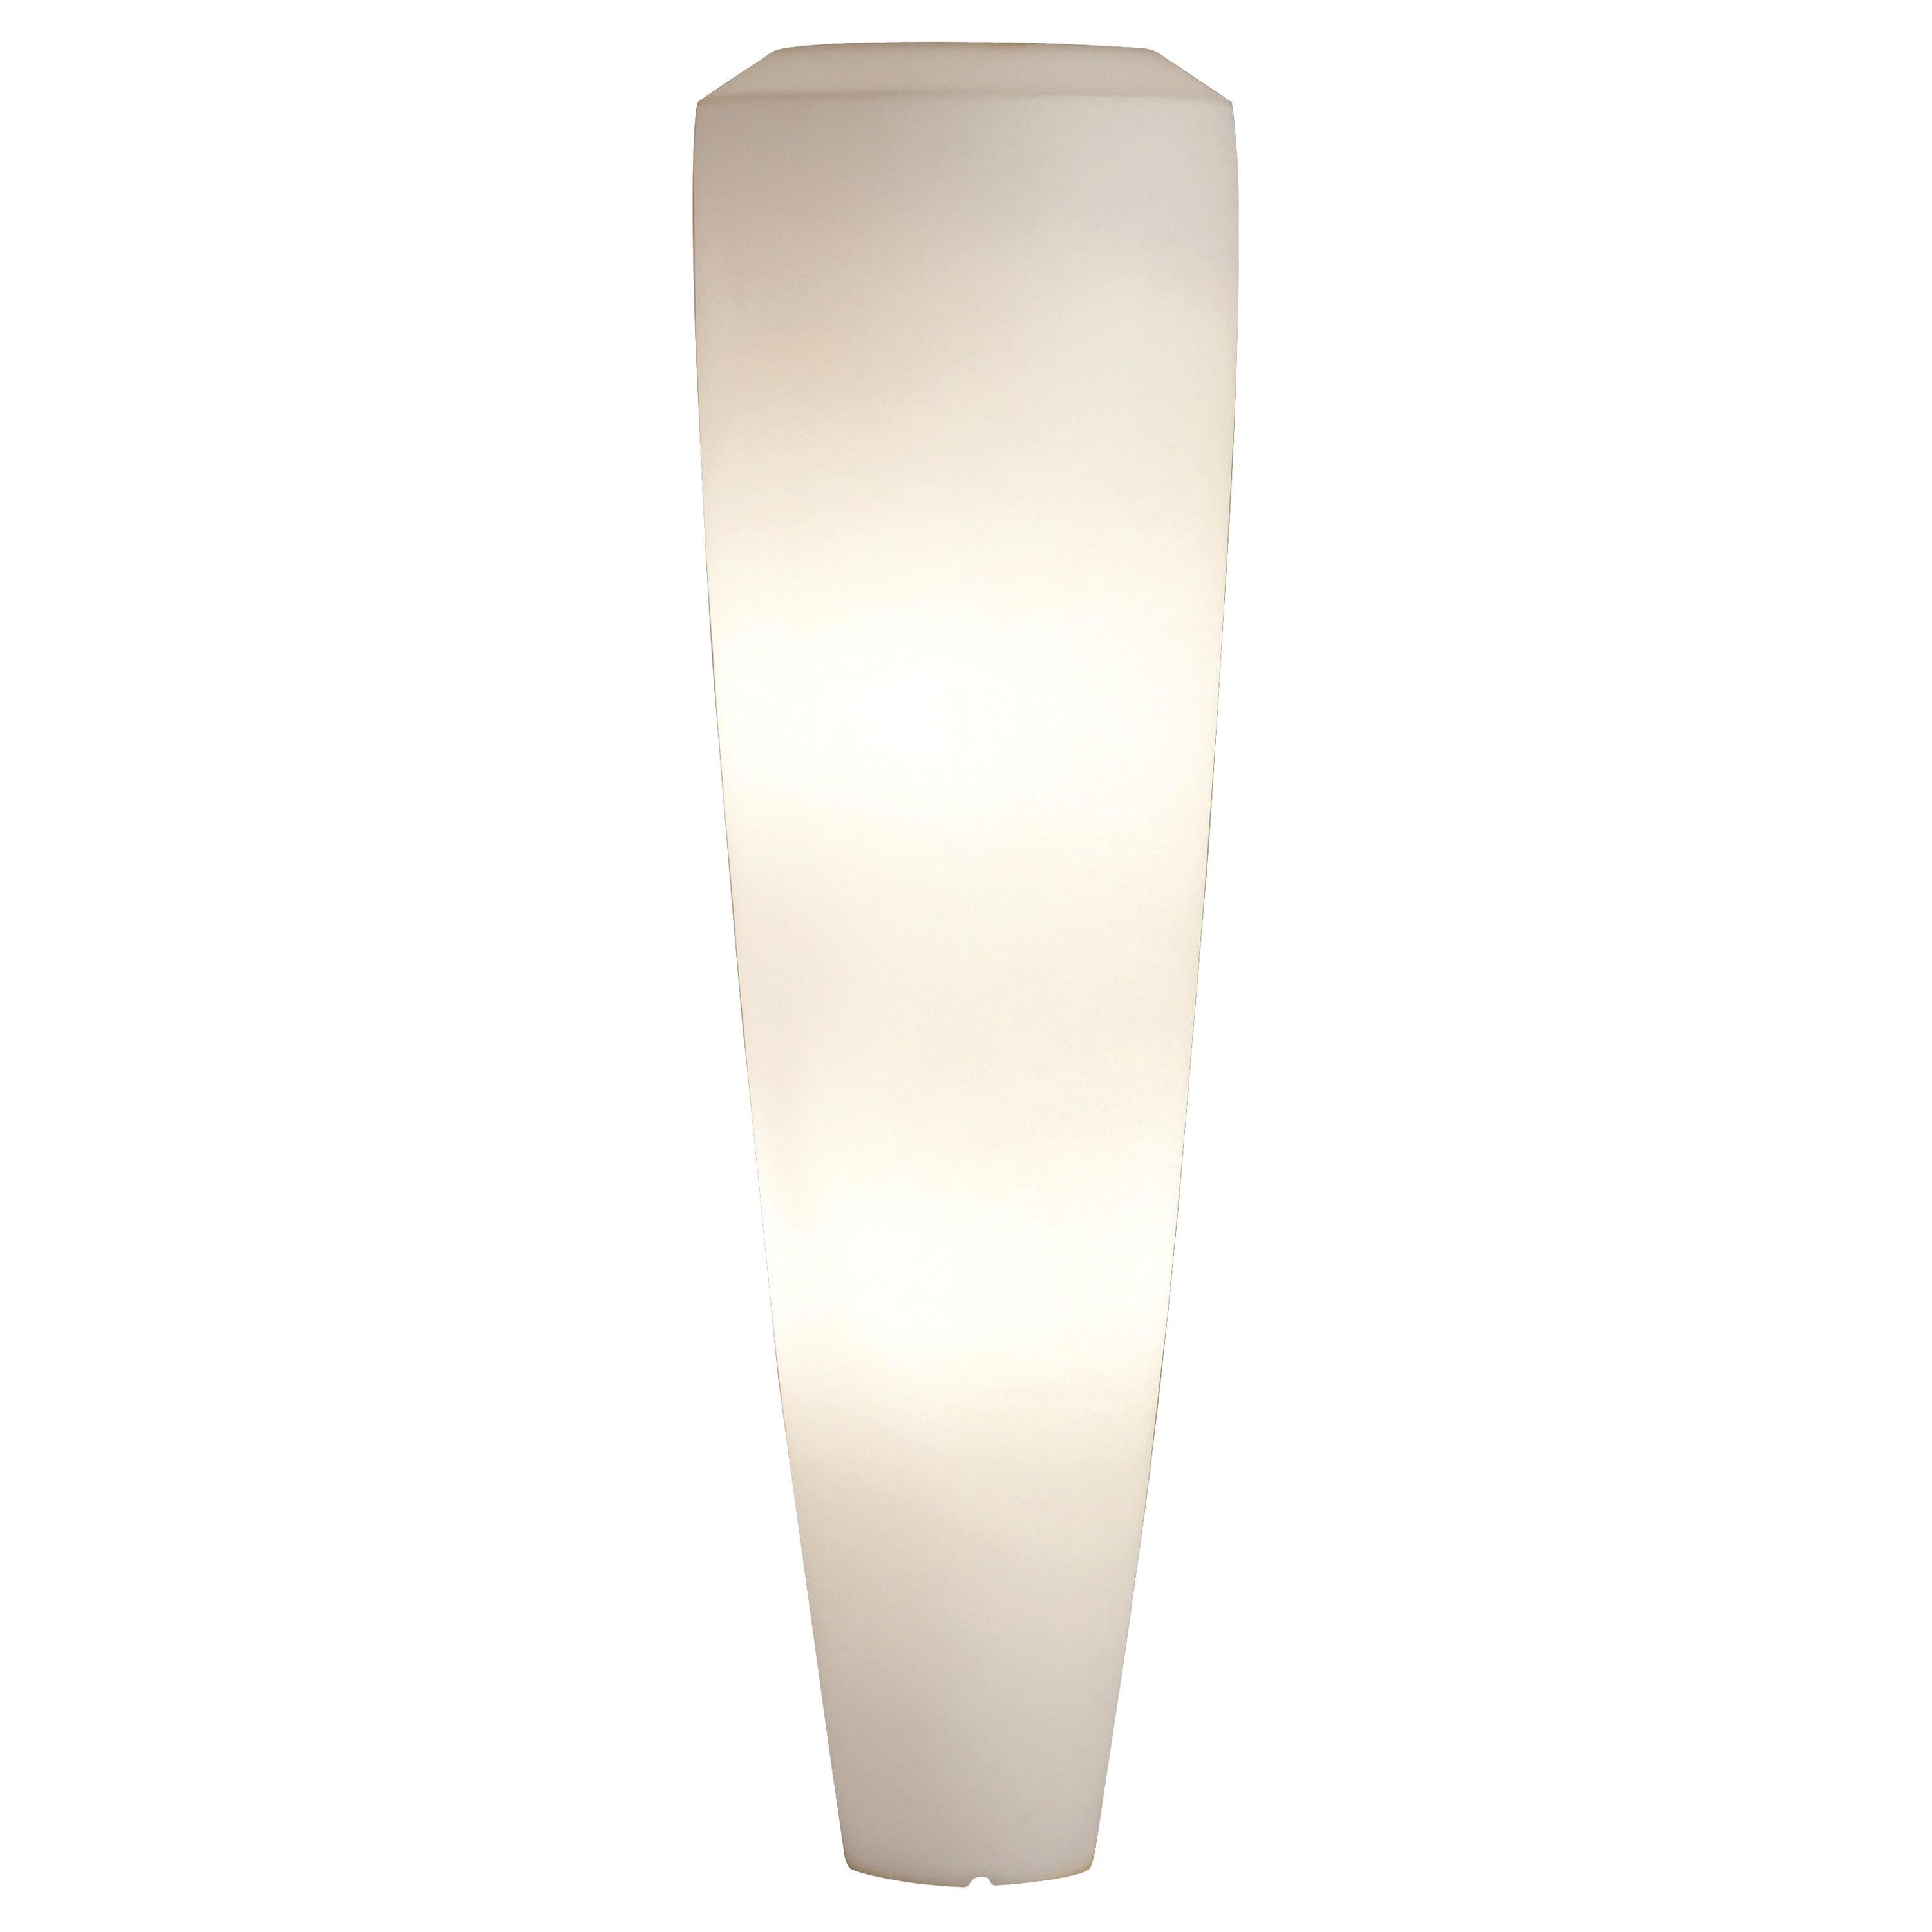 Obice Big Lamp, LDPE, Fluorescent Kit, Indoor/Outdoor, Italy